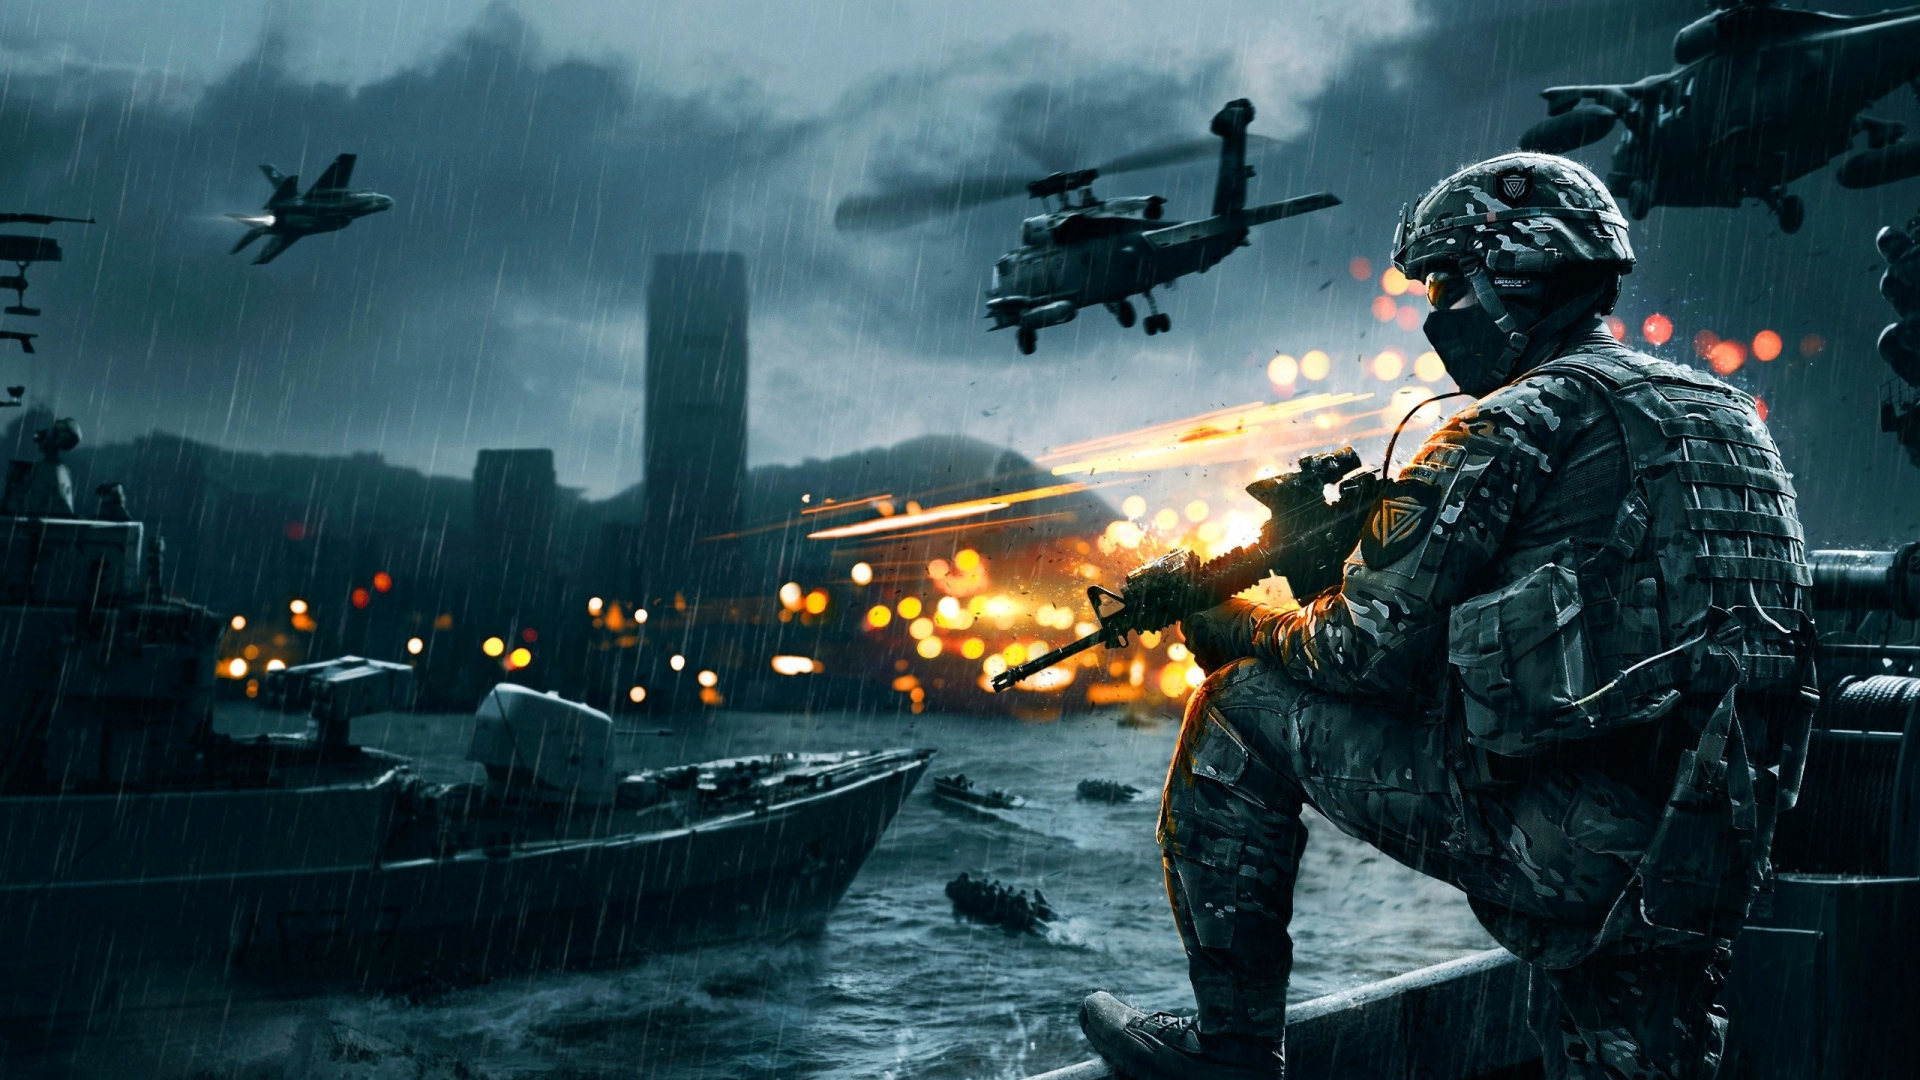 Download 1920×1080 Battlefield 4, Game, Ea digital illusions ce Wallpaper, Background Full HD 1080p